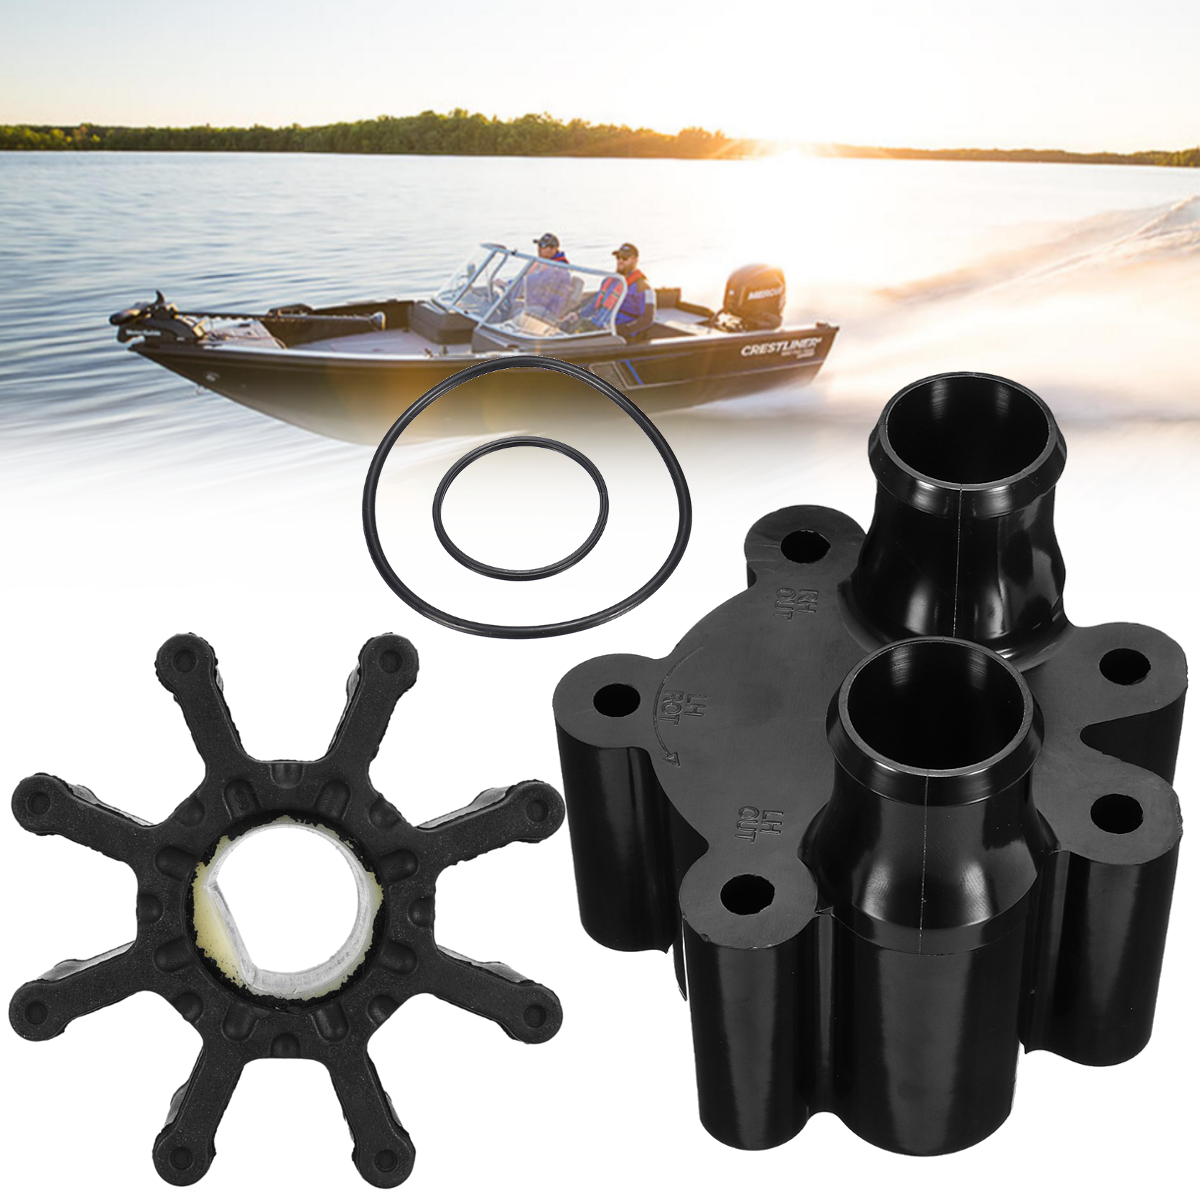 for MerCruiser for Bravo 46-807151A14 18-3150 Marine Water Pump Impeller Repair Kit Rubber + Metal 67mm Diameter 8 Blades